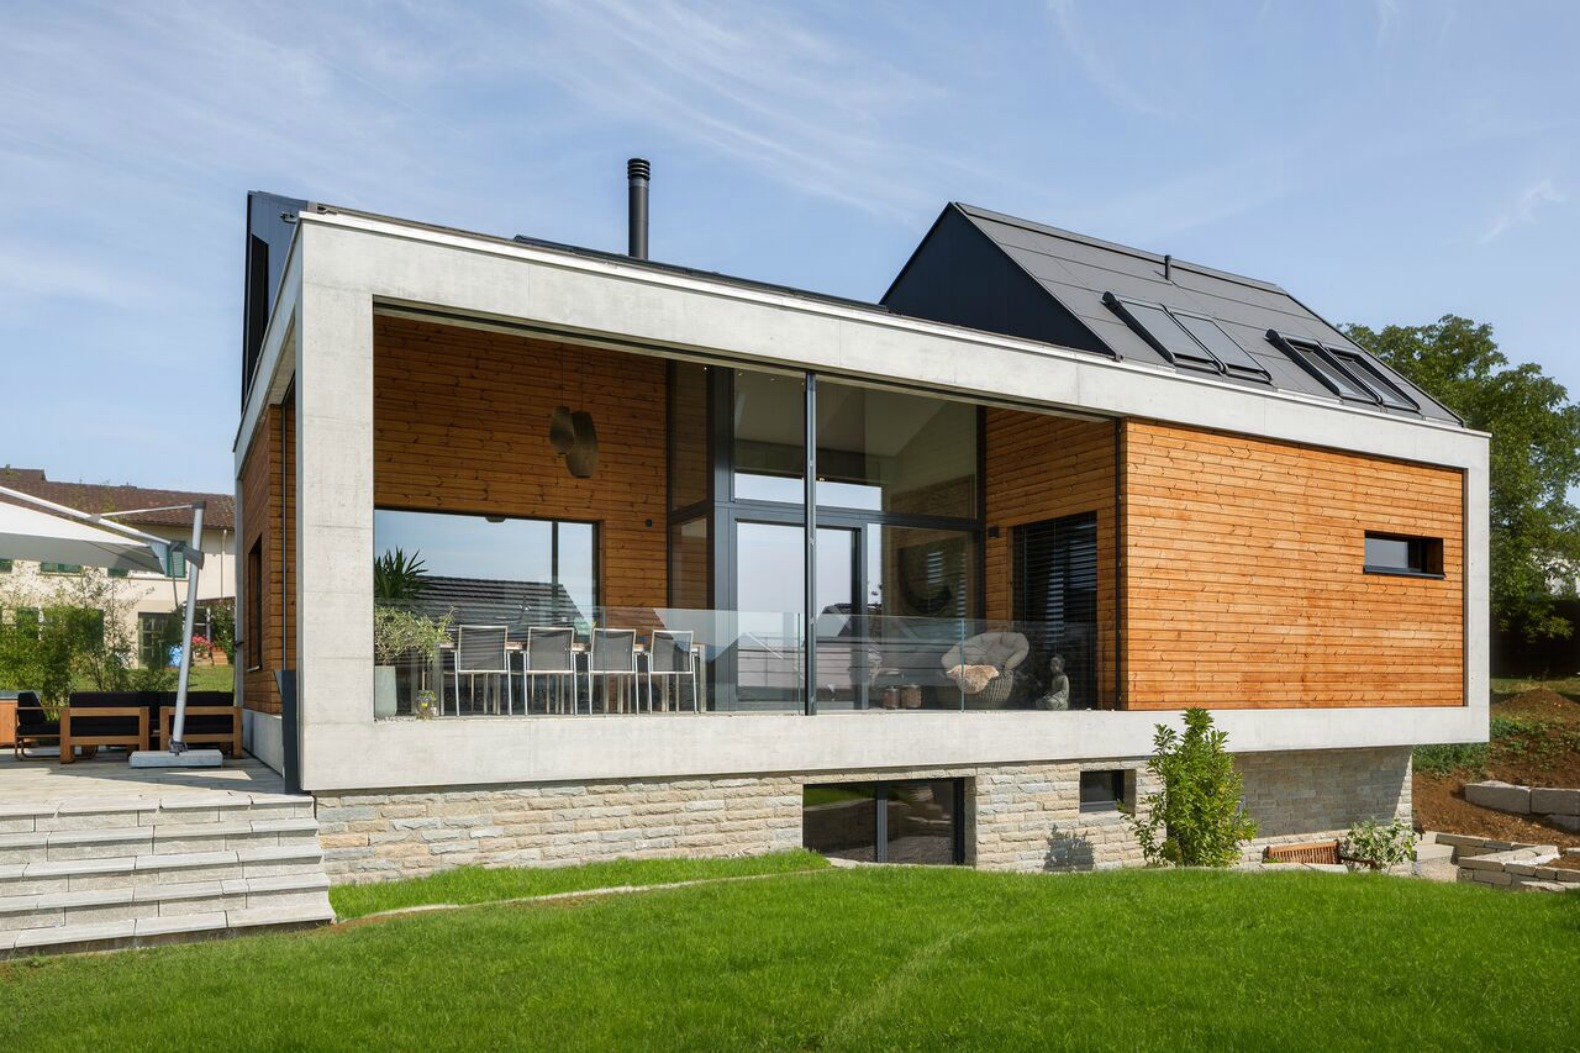 Natural Material Palette Brings Warmth To Minimalist Swiss Home